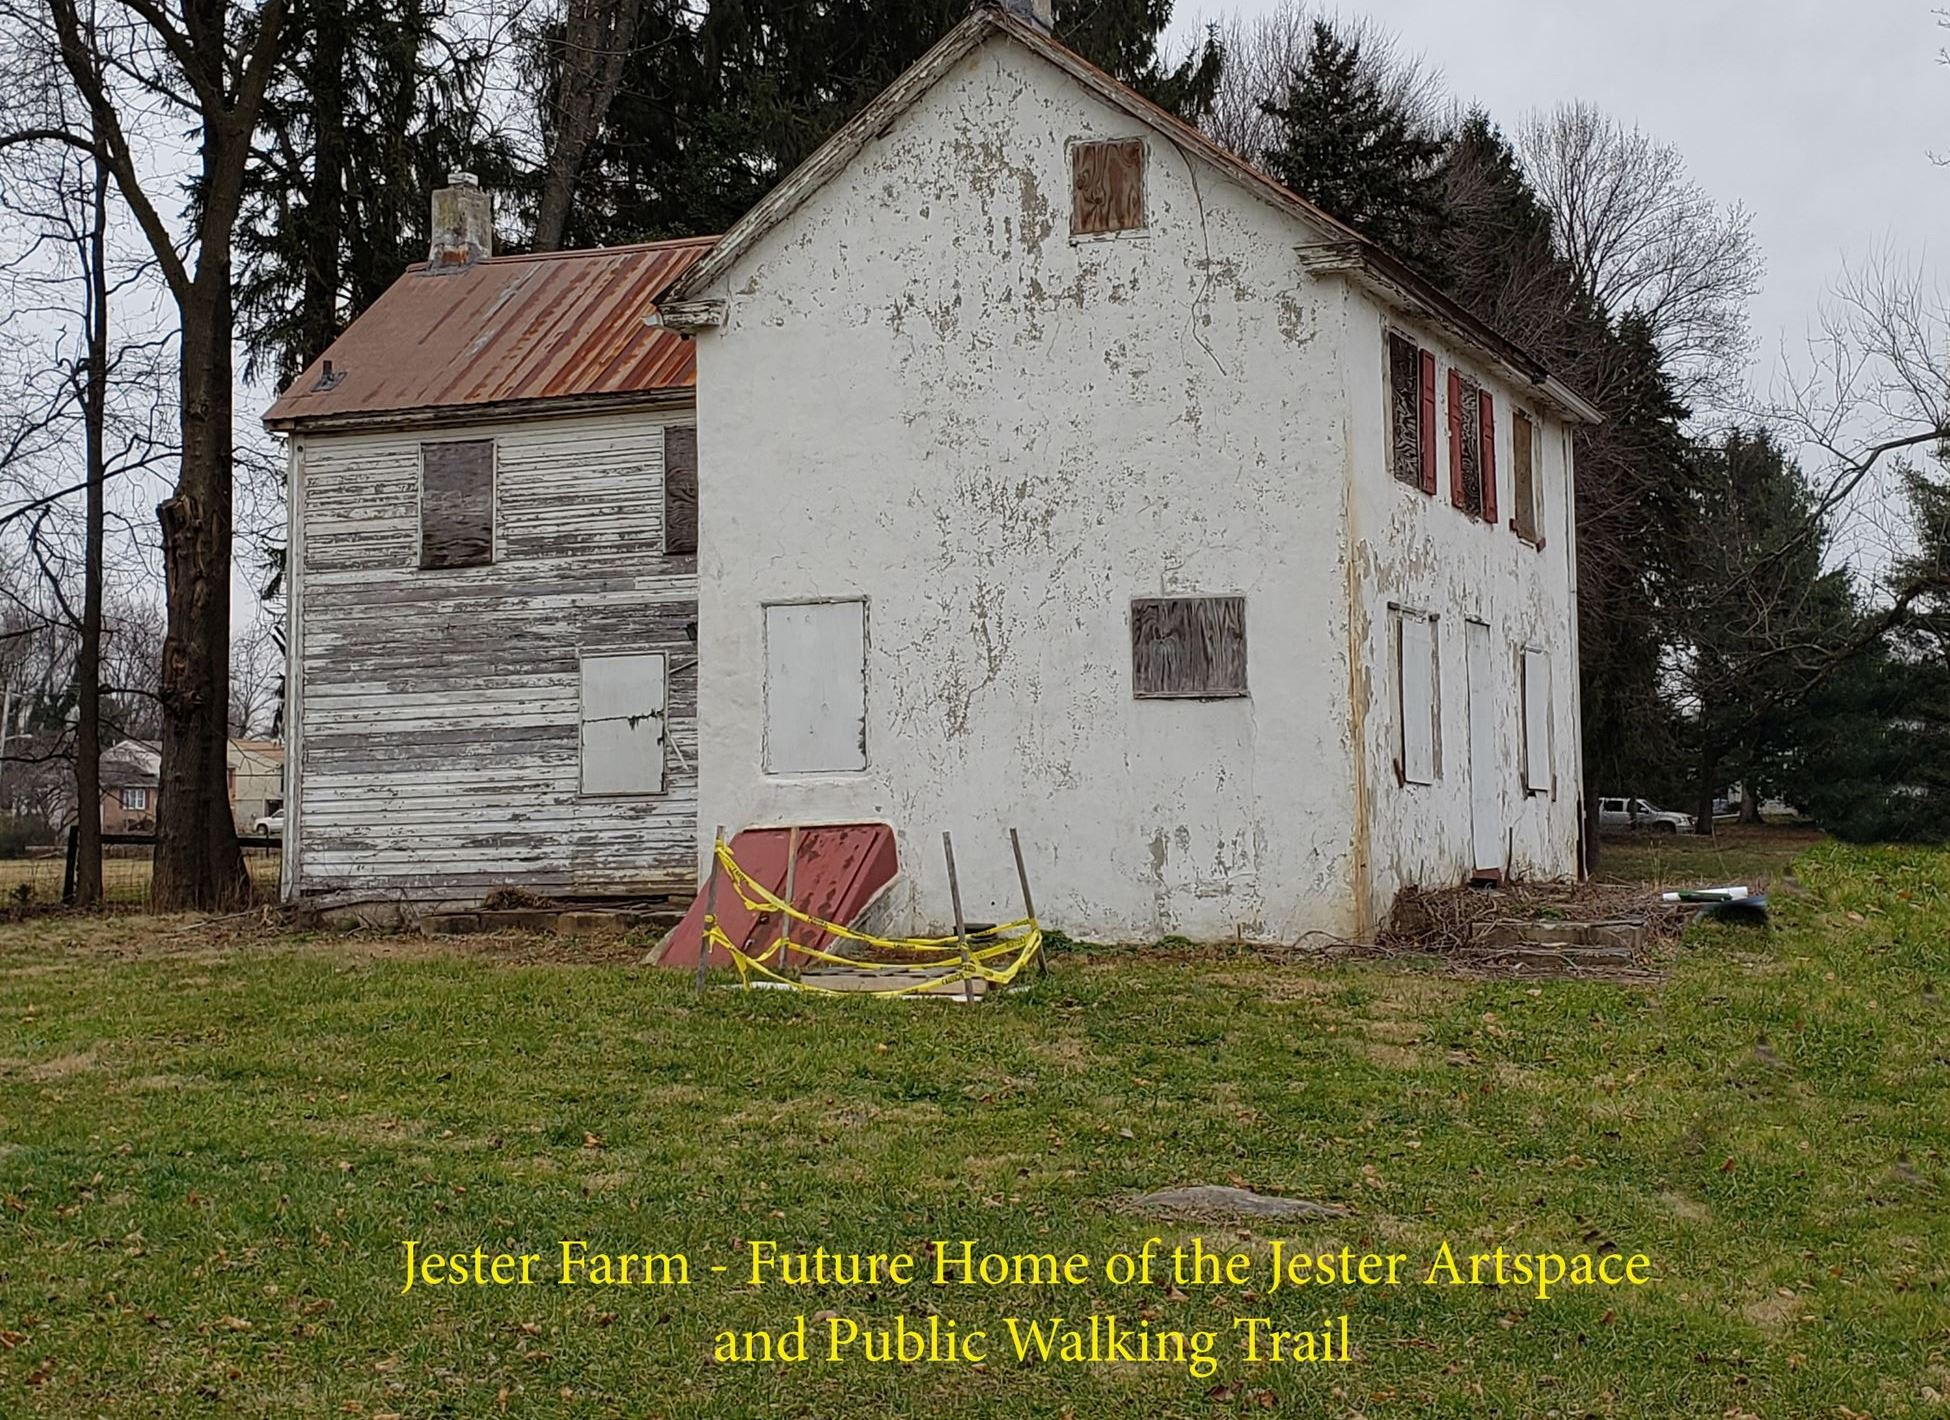 Jester Farm - Future Home of the Jester Artspace and Public Walking Trail